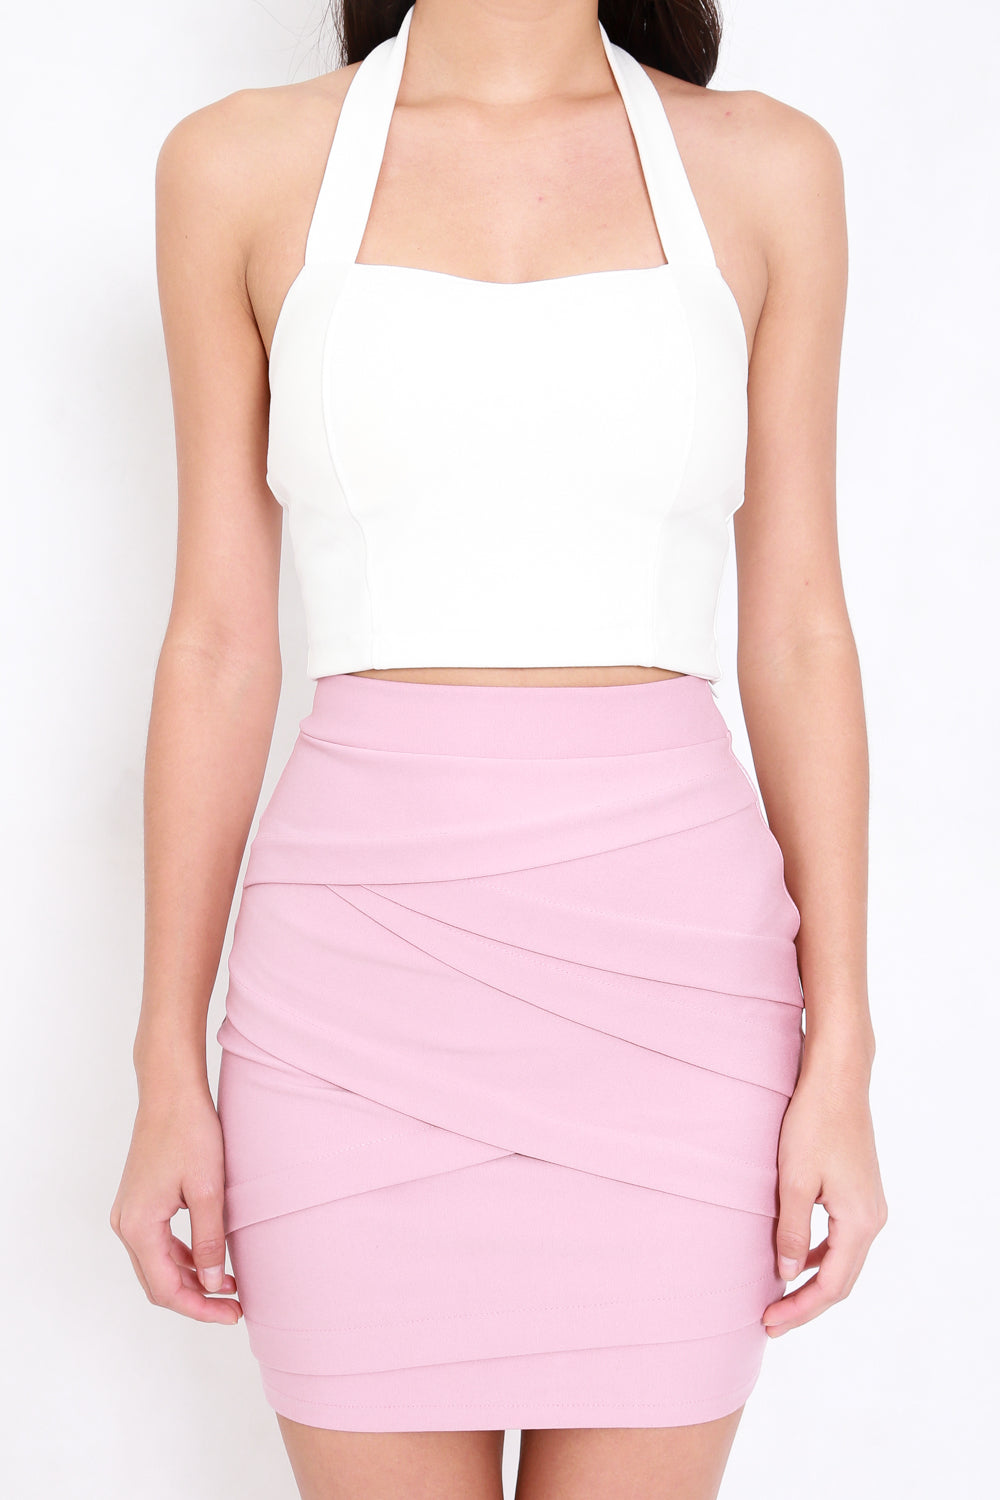 *Premium* Criss Cross Bandage Skirt (Light Pink)